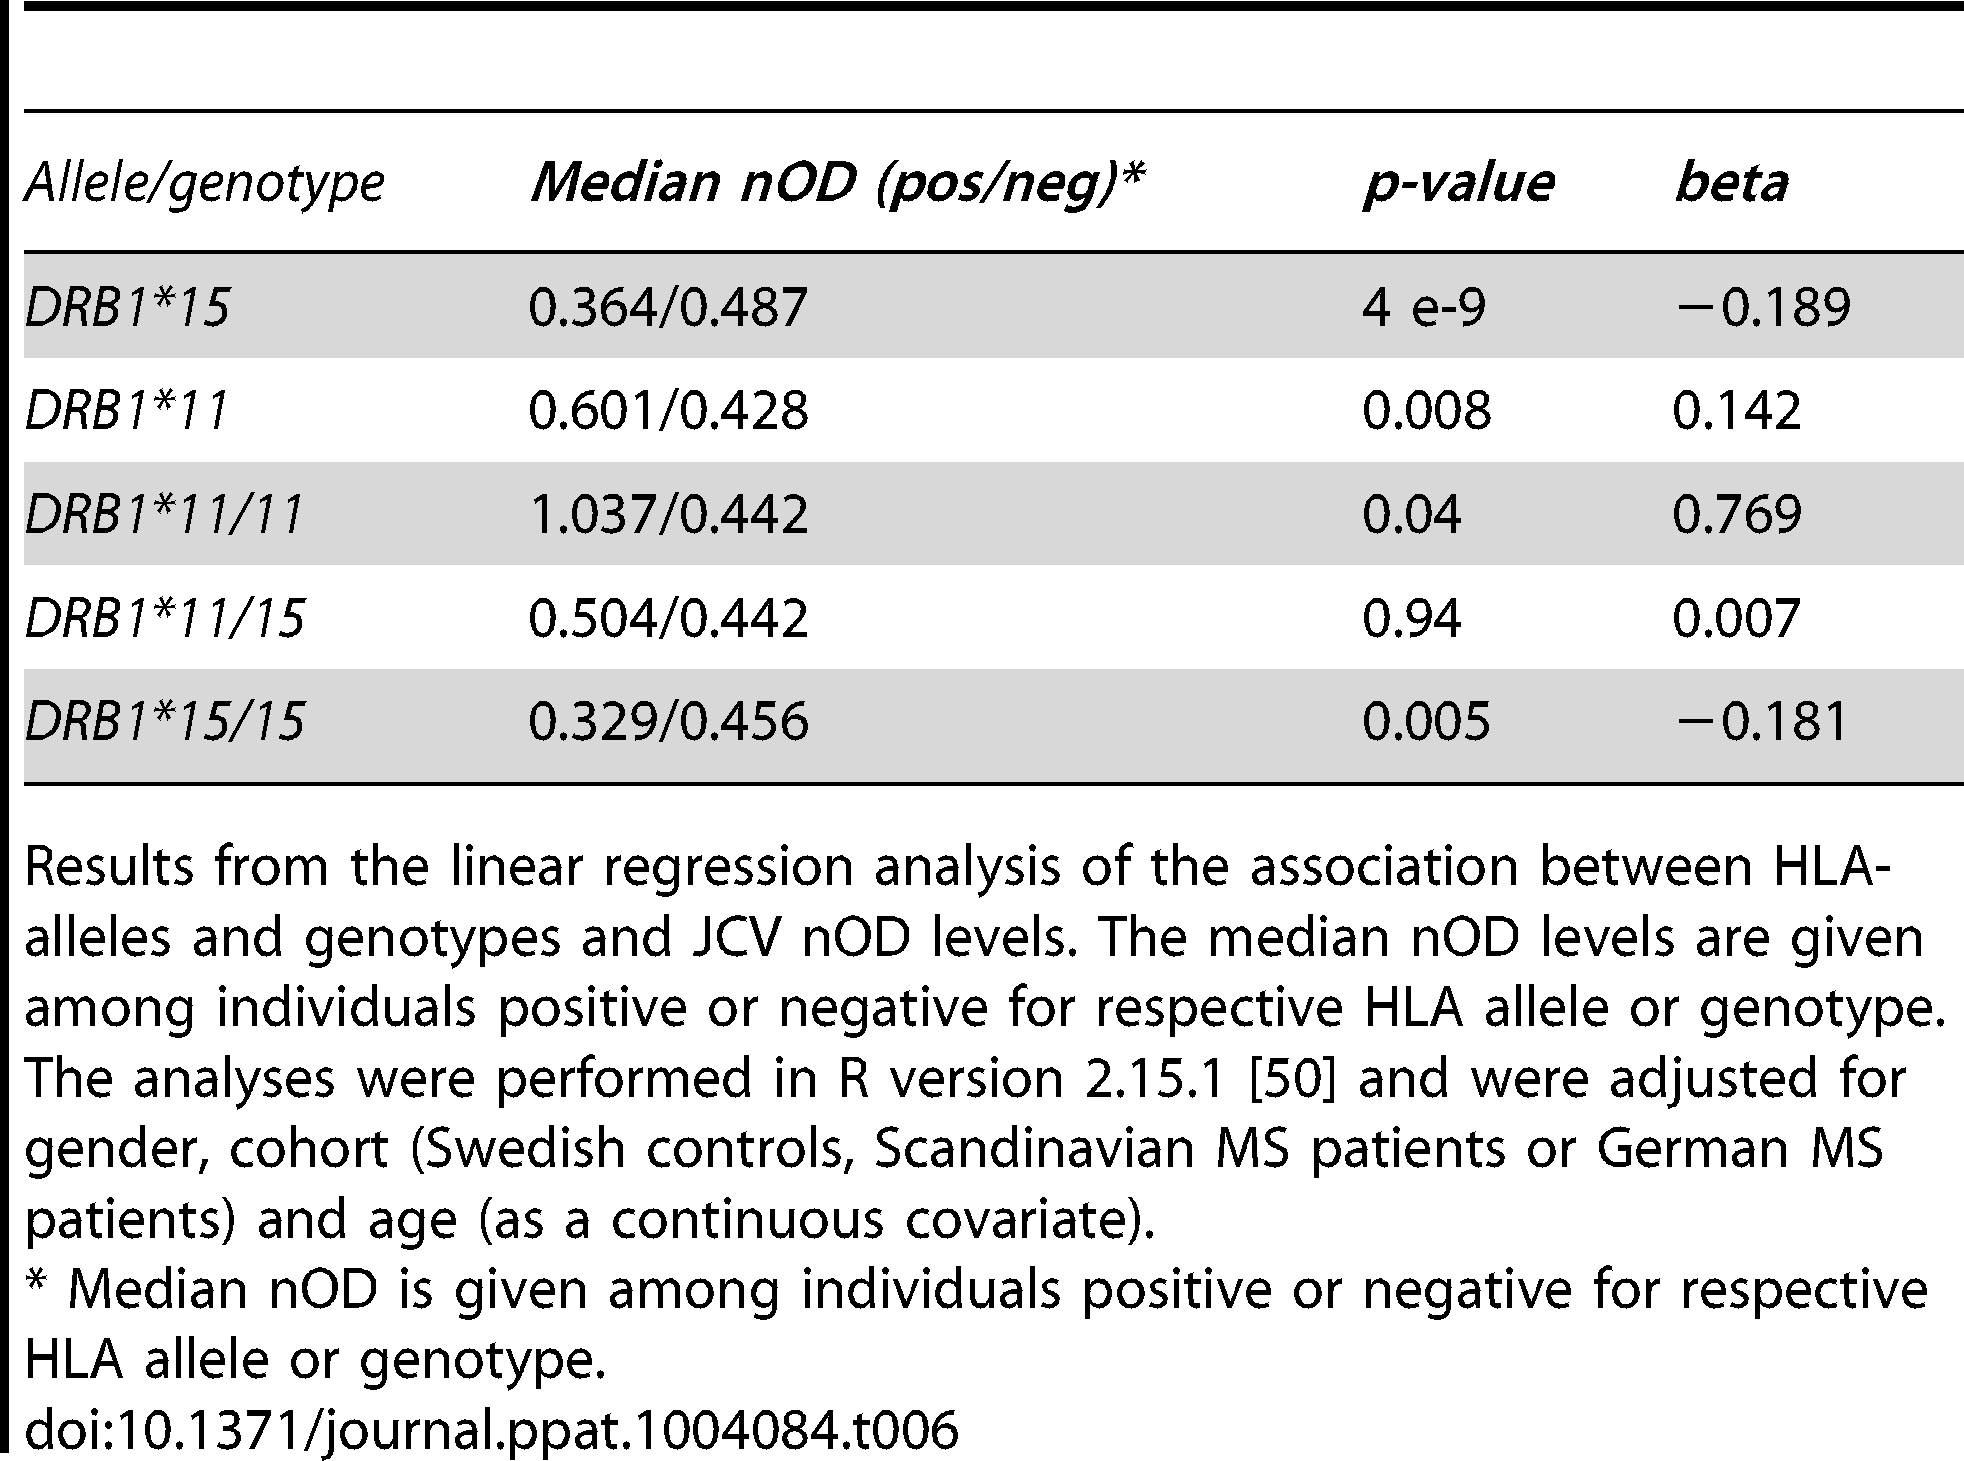 Association of <i>HLA</i> genotypes to transformed JCV nOD levels in joint analysis of Swedish controls and Scandinavian and German MS patients.